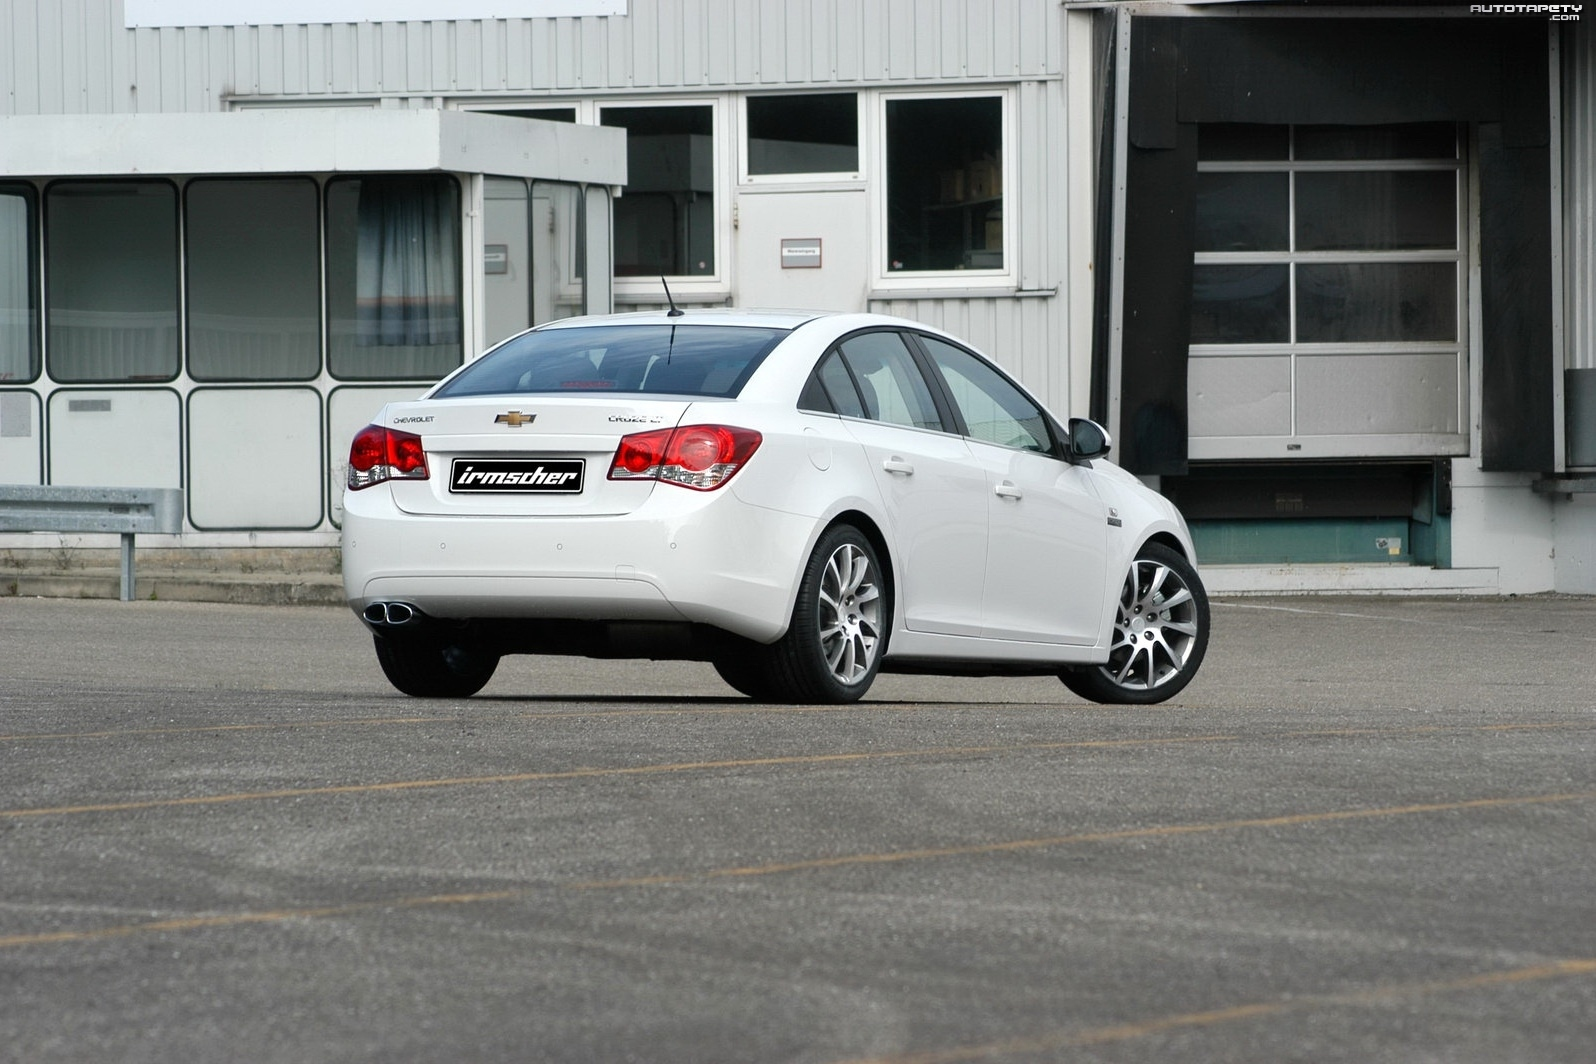 Chevrolet Cruze, Pakiet, Irmscher